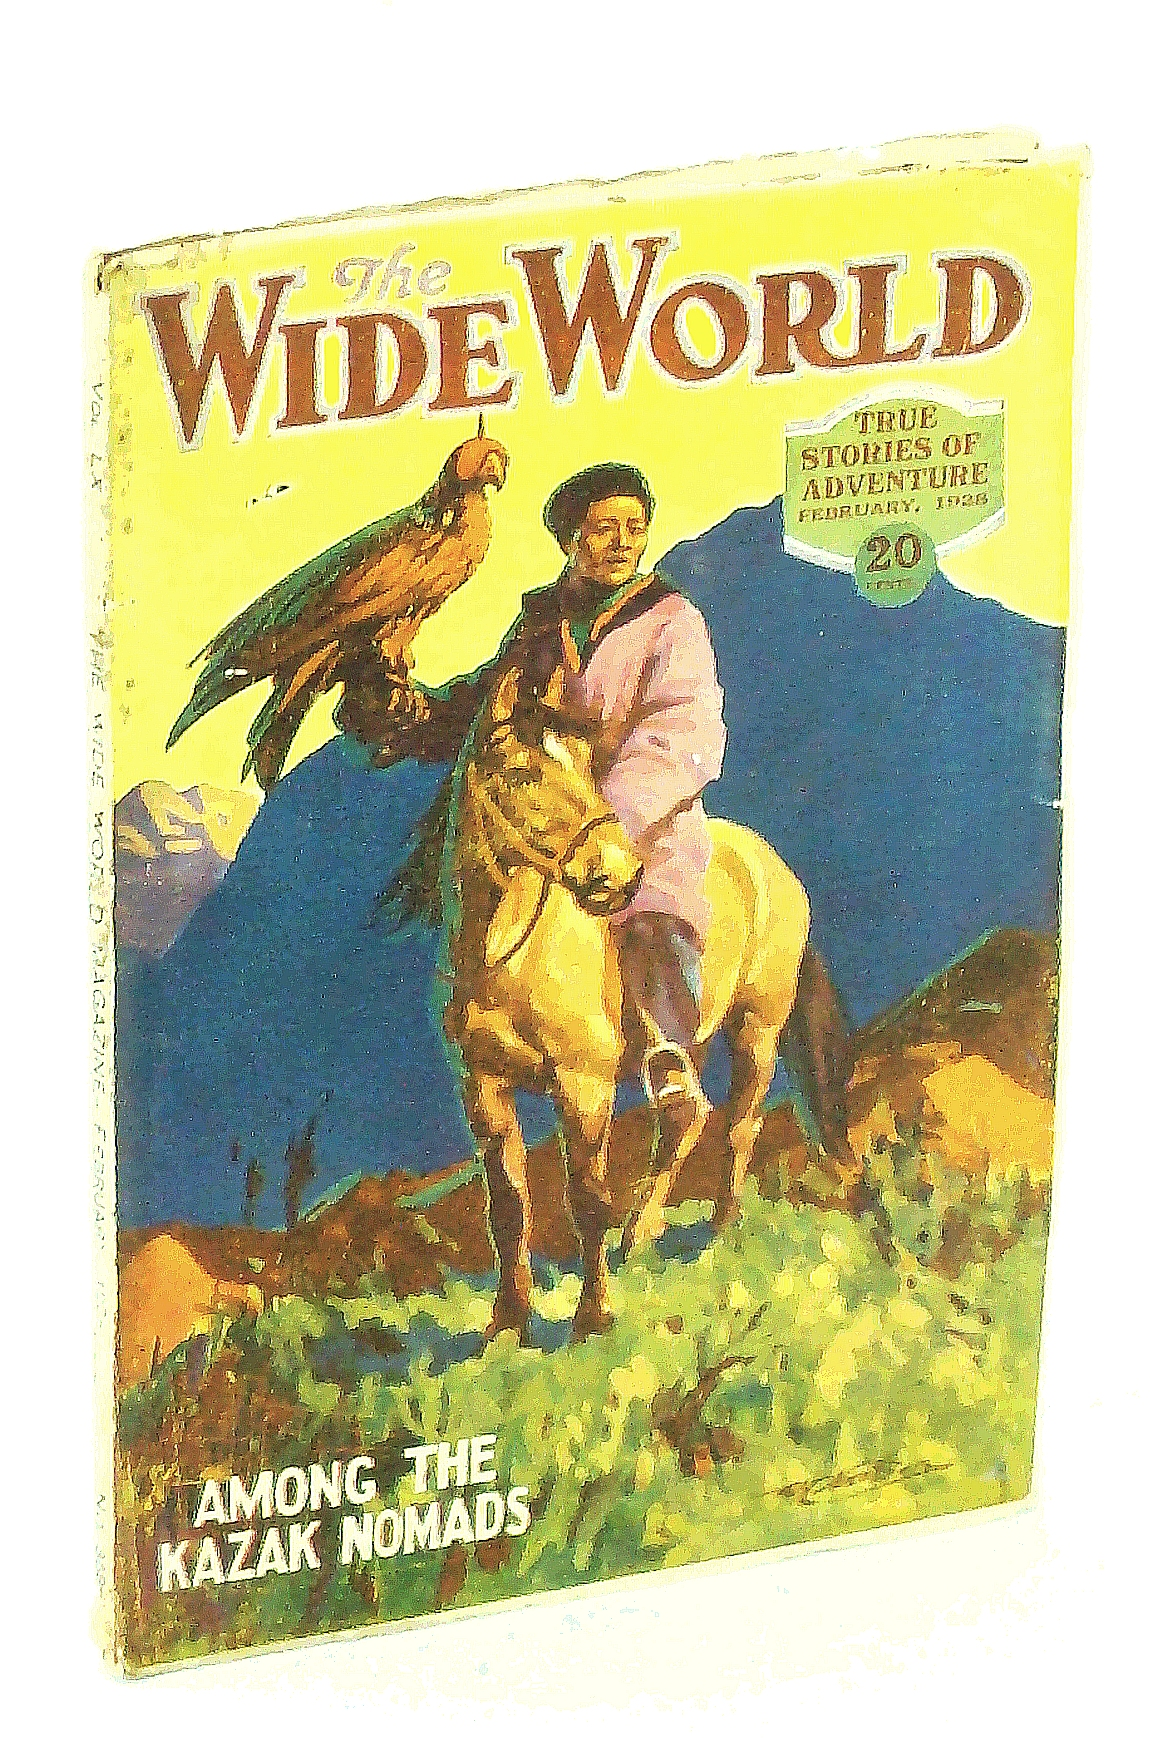 Image for The Wide World Magazine - True Stories of Adventure, February [Feb.] 1928, Vol. LX, No. 358: Through Arctic Seas / Among the Kazak Nomads